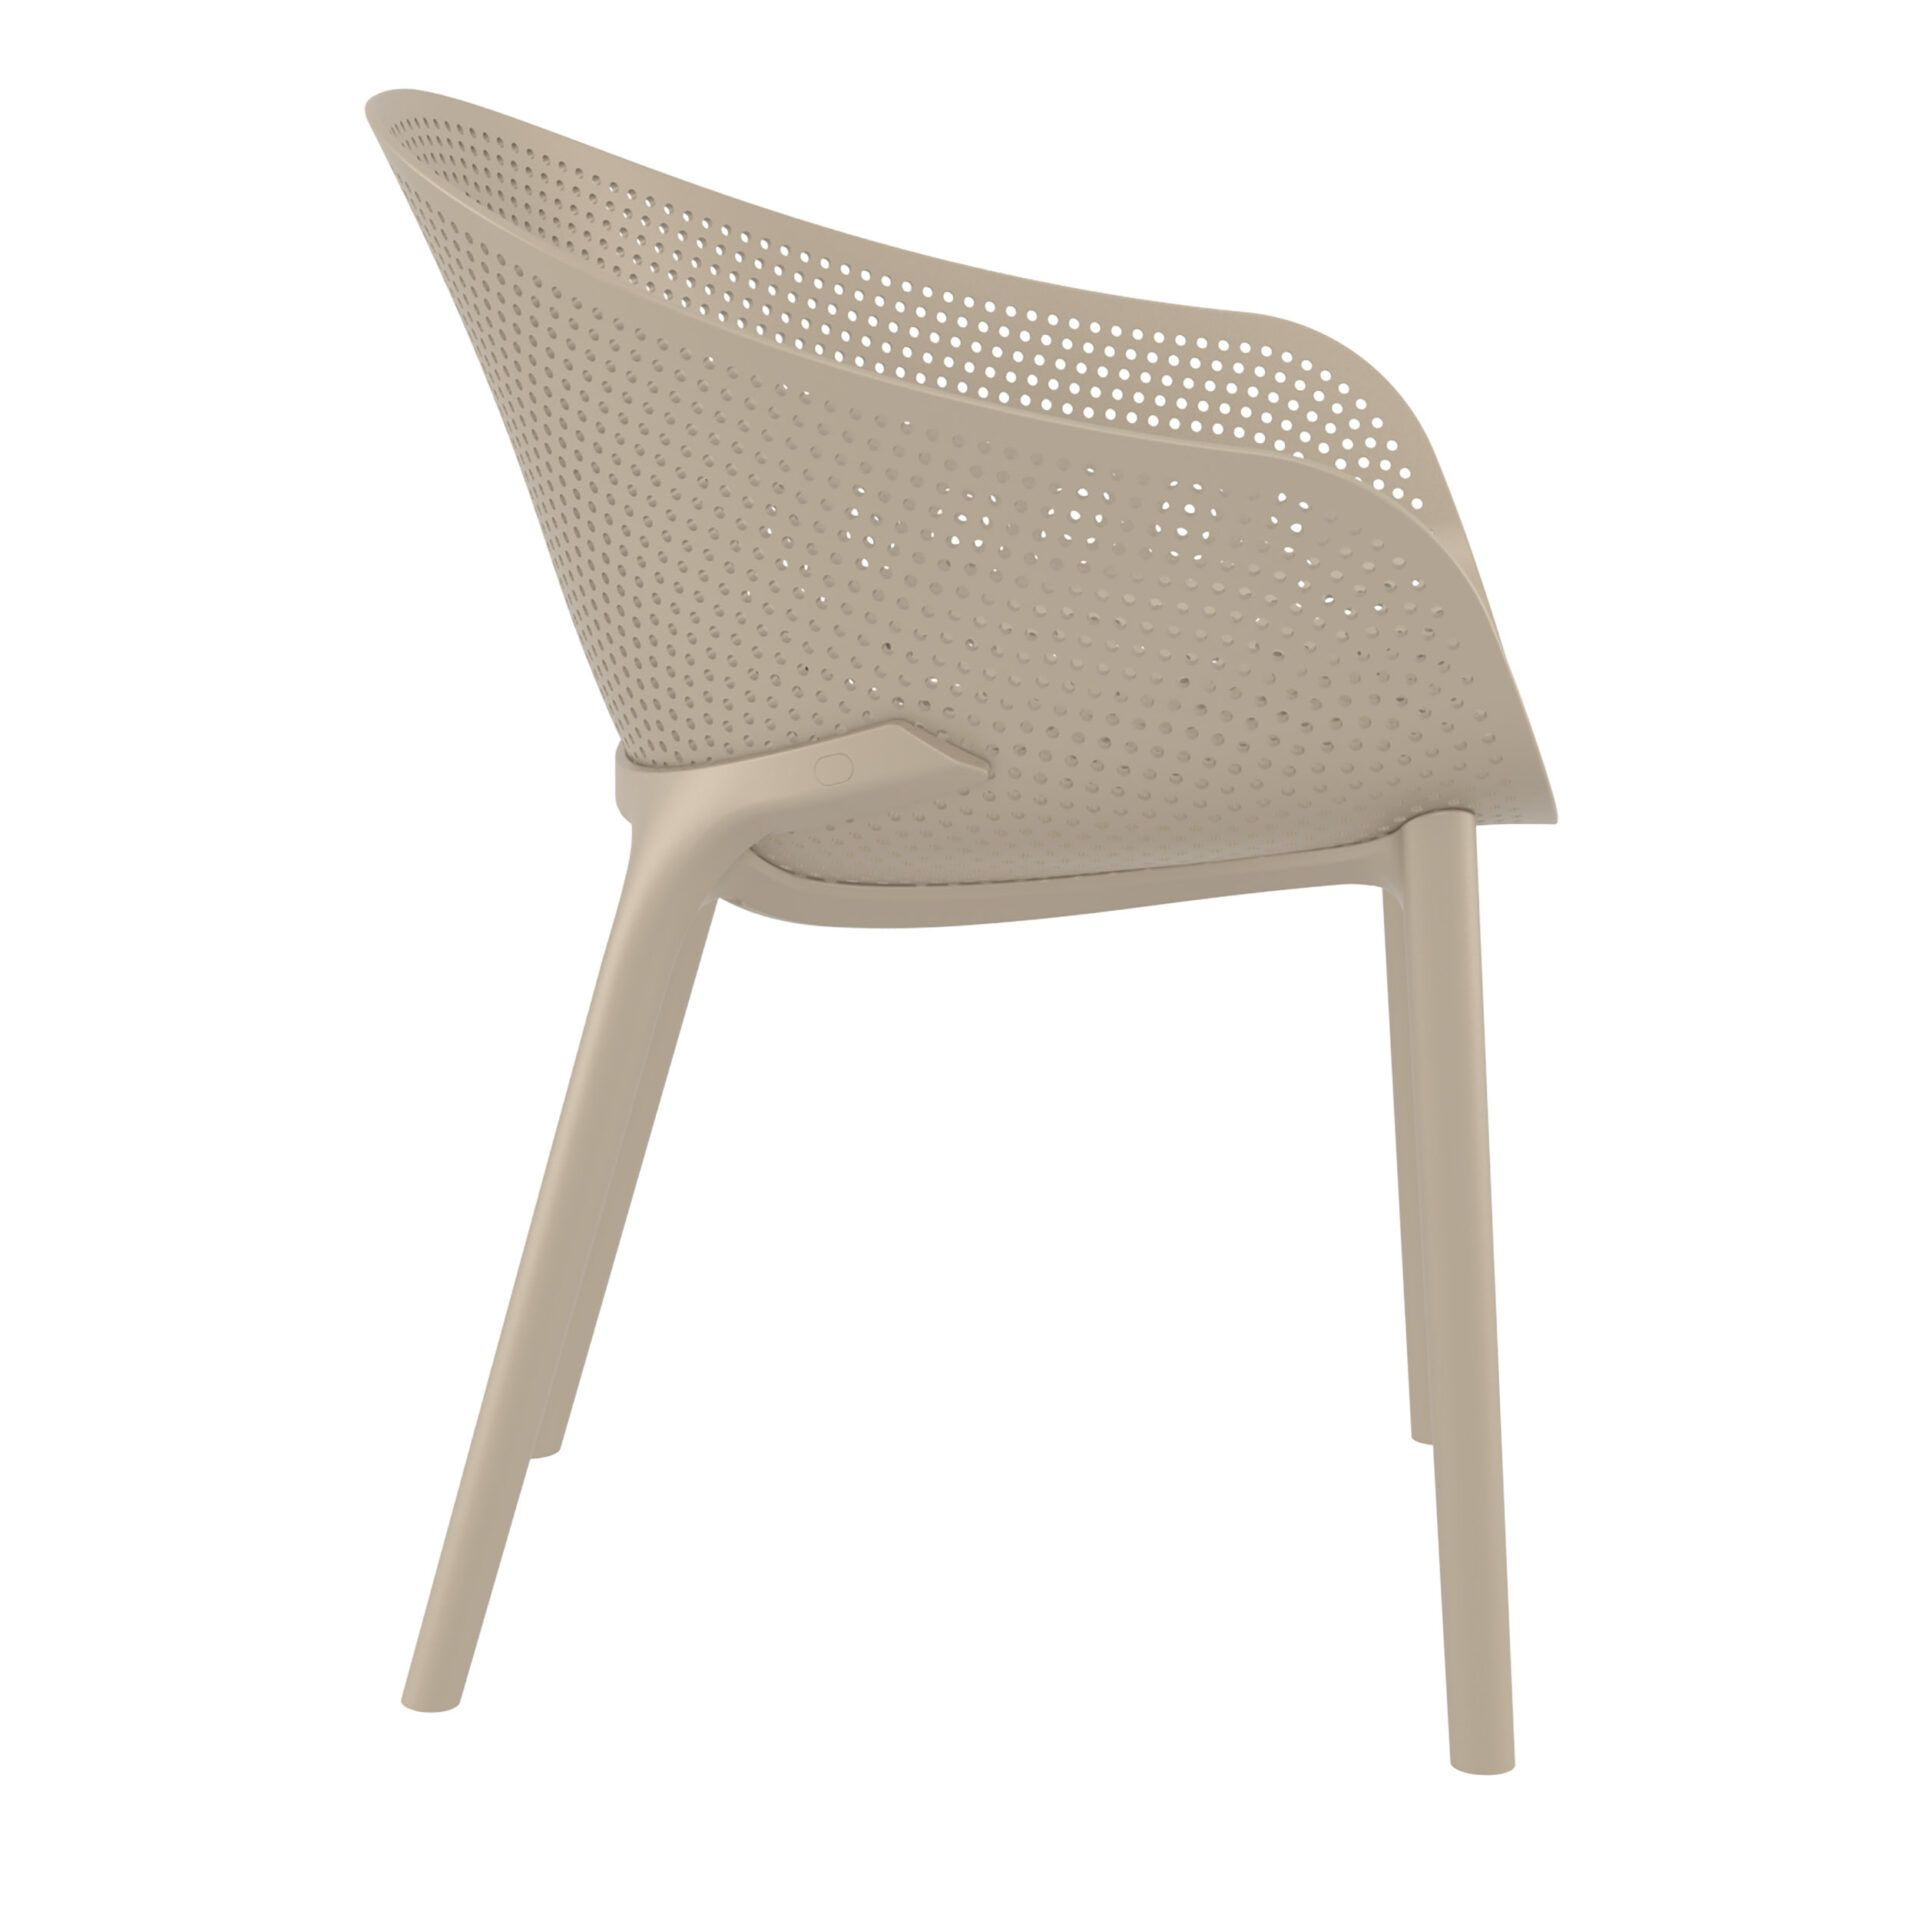 outdoor seating polypropylene sky chair taupe side